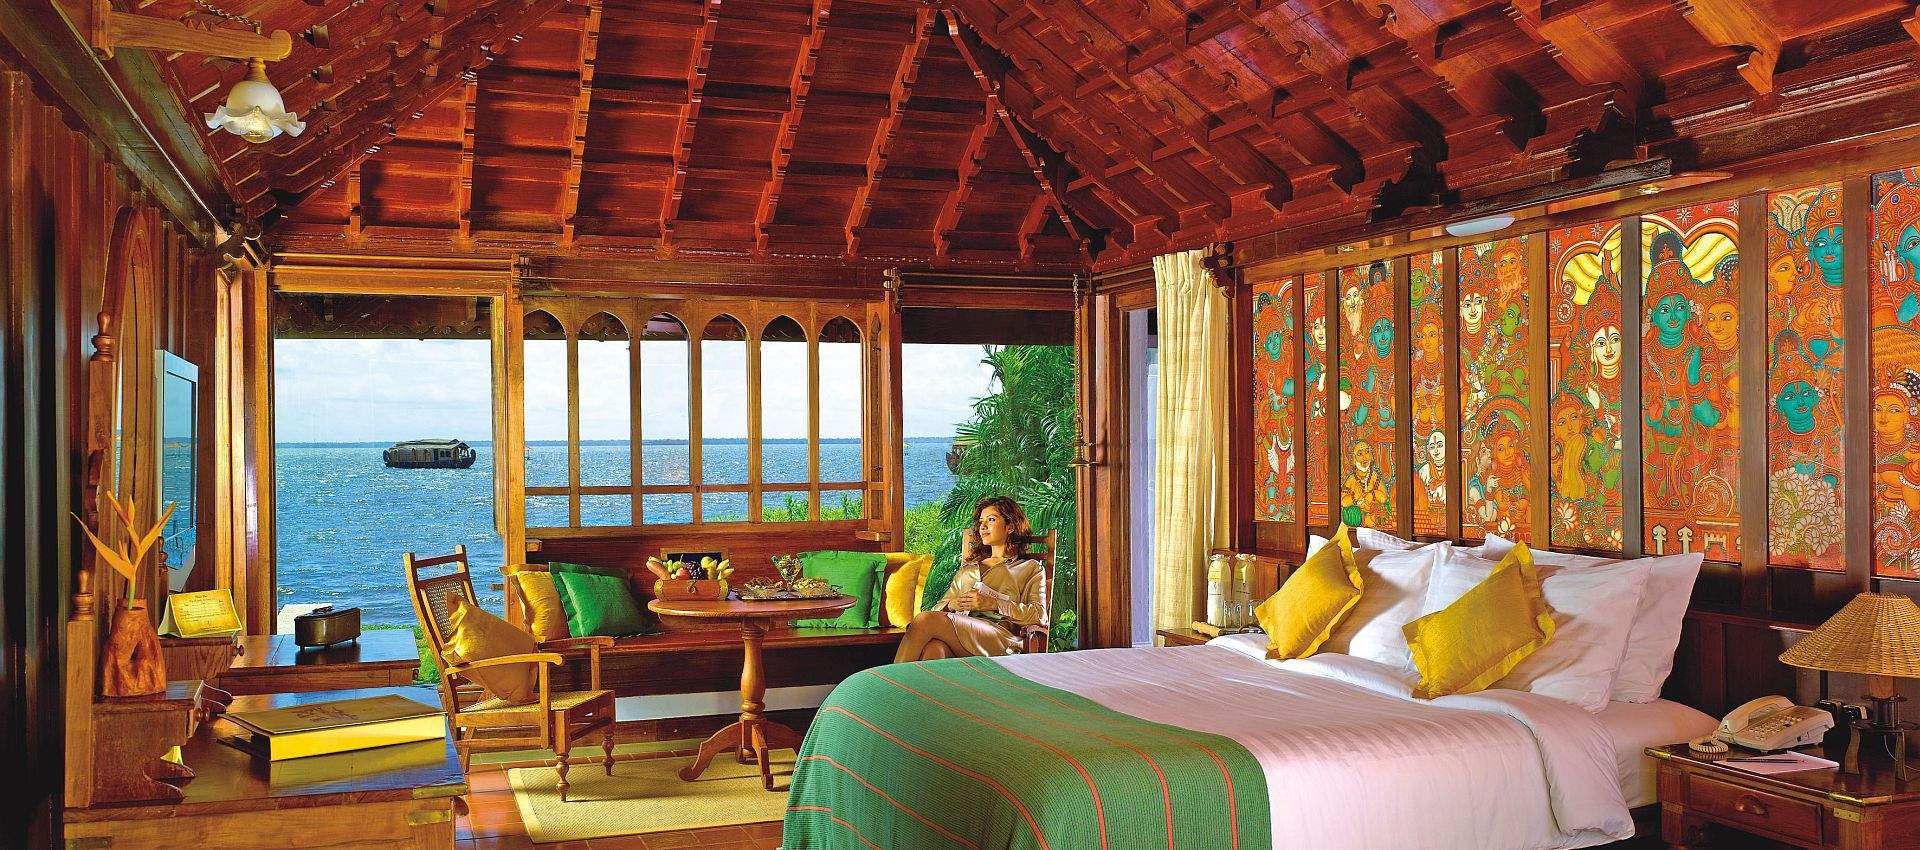 Luxury Romantic Kerala